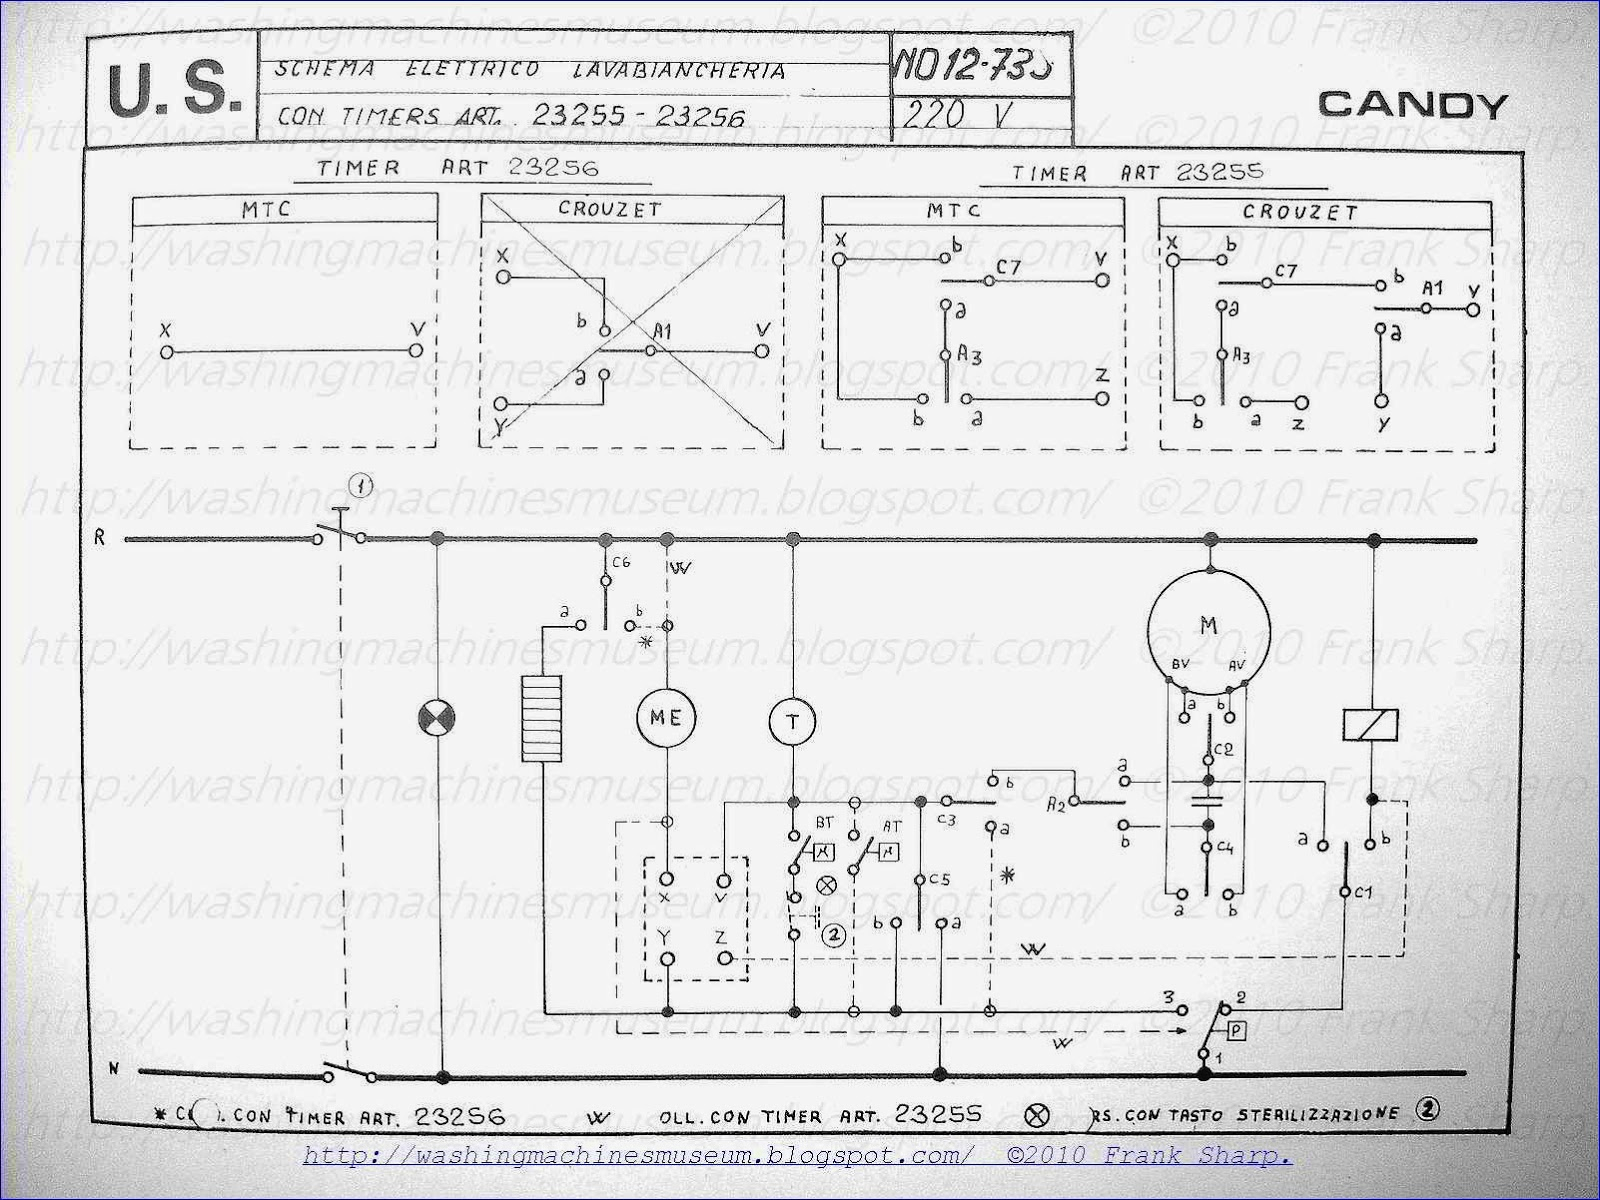 washing machine wiring diagram and schematics Download-CANDY WASHING MACHINE WITH TIMER SCHEMATIC DIAGRAM 13-b